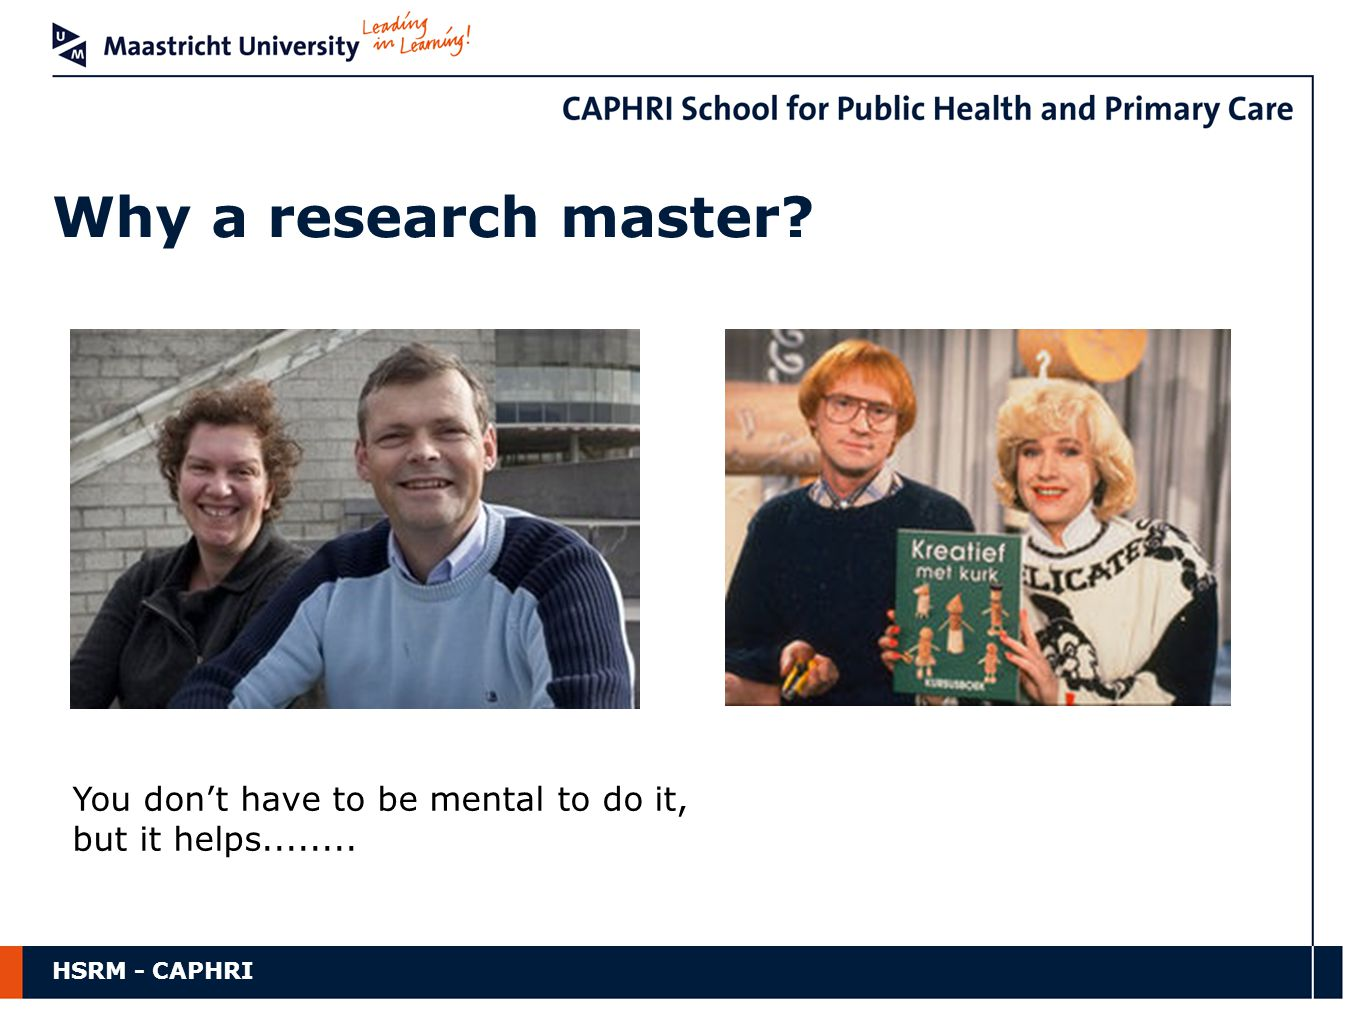 HSRM - CAPHRI Why a research master? You don't have to be mental to do it, but it helps........